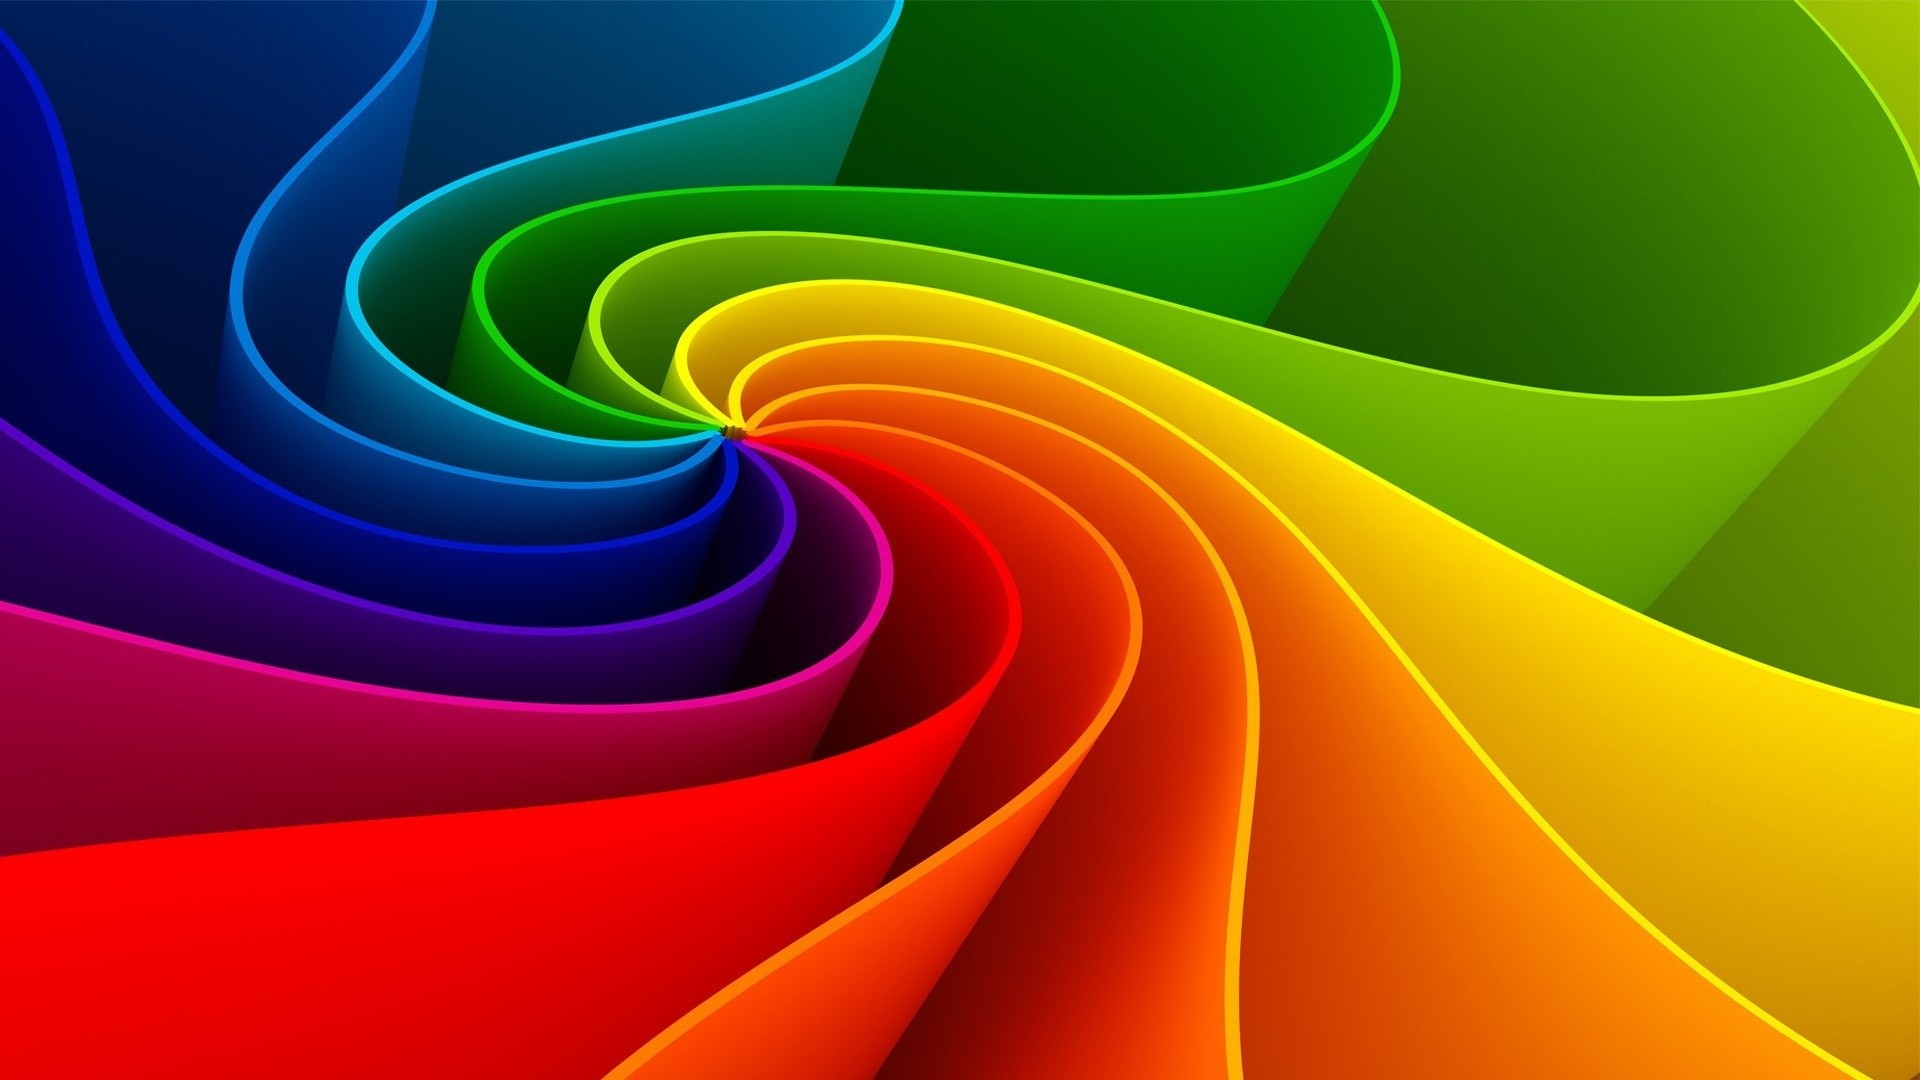 1920x1080 Abstract rainbow wallpapers hd wallpaper 3d abstract wallpapers